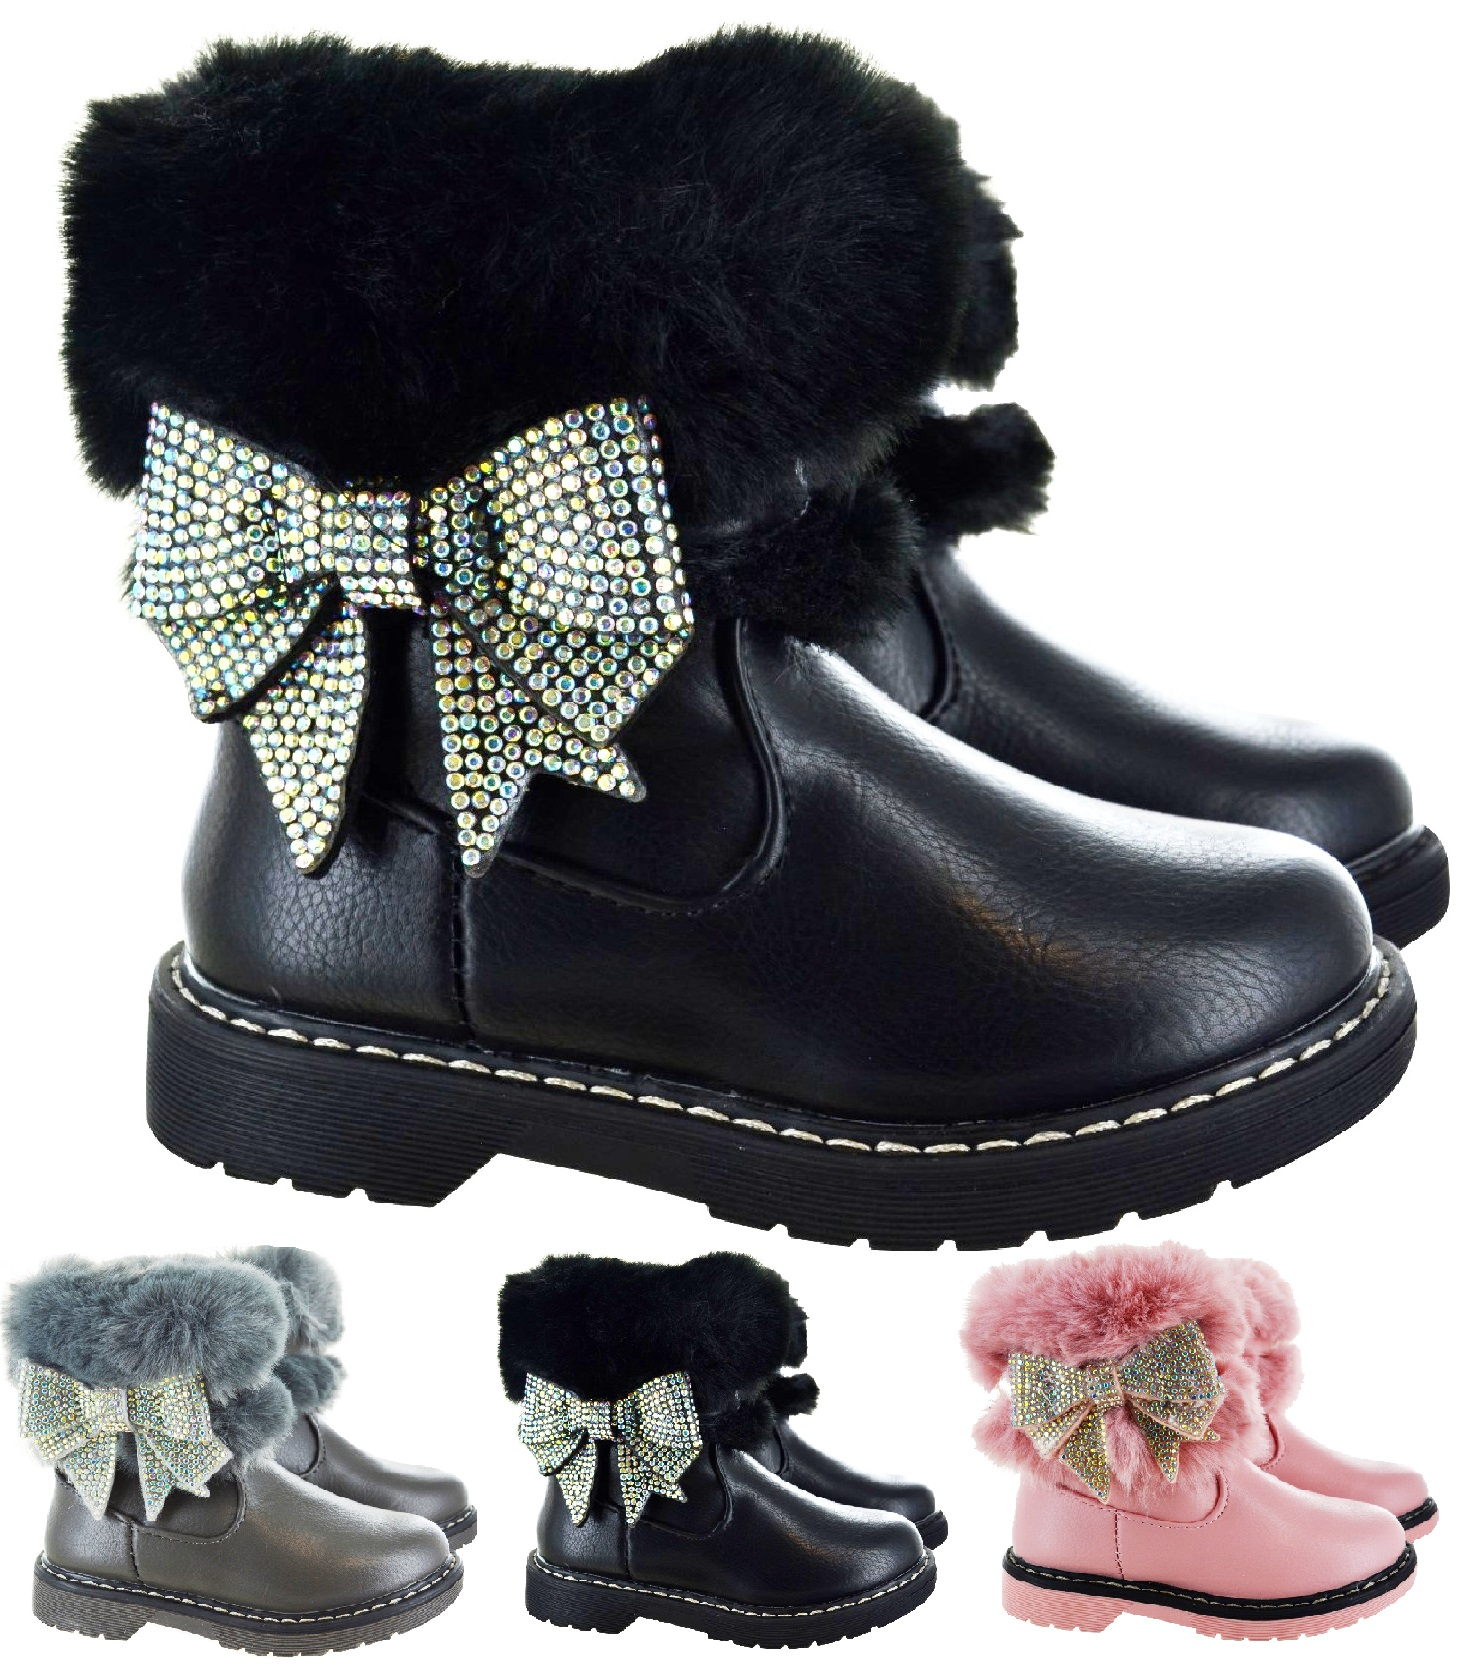 GIRLS WINTER ANKLE COMFY CASUAL SCHOOL